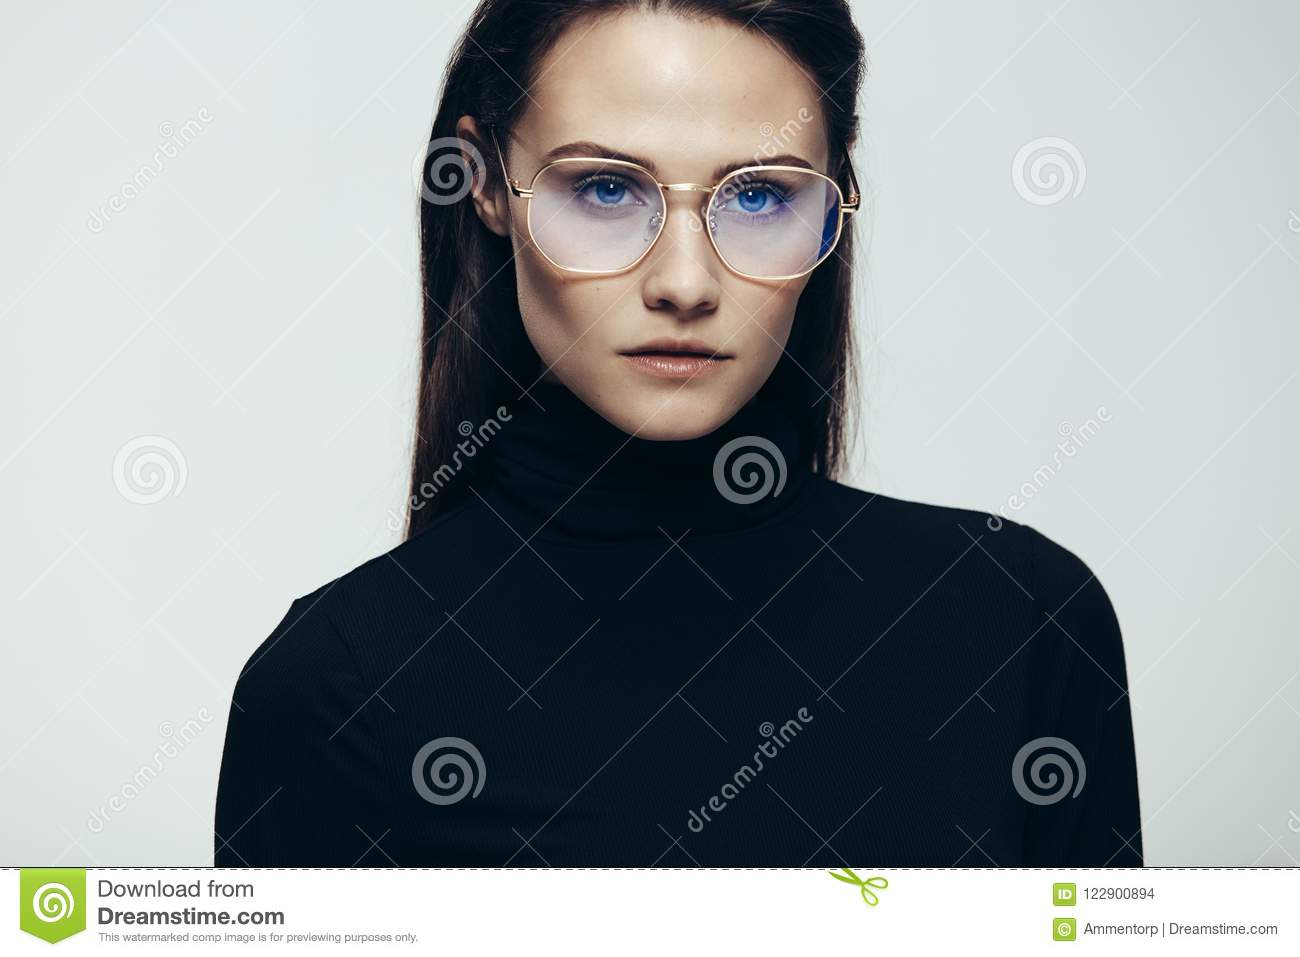 68dae78fbcd Close up portrait of woman wearing glasses staring with an intense  expression. Female model in black dress on grey background.